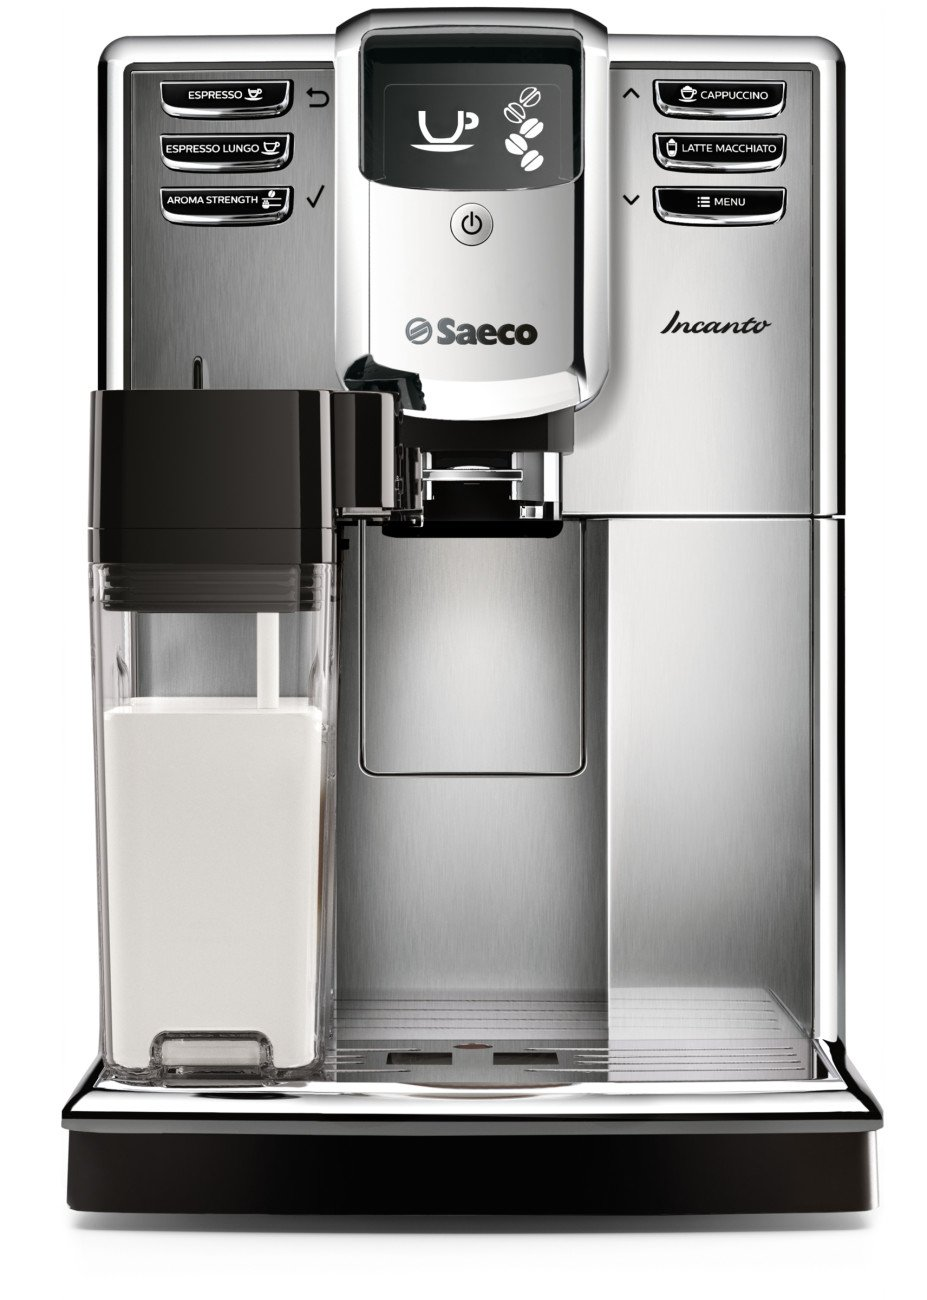 Saeco Incanto Carafe Super Automatic Espresso Machine with AquaClean filter, Stainless Steel, HD8917/48 by Saeco